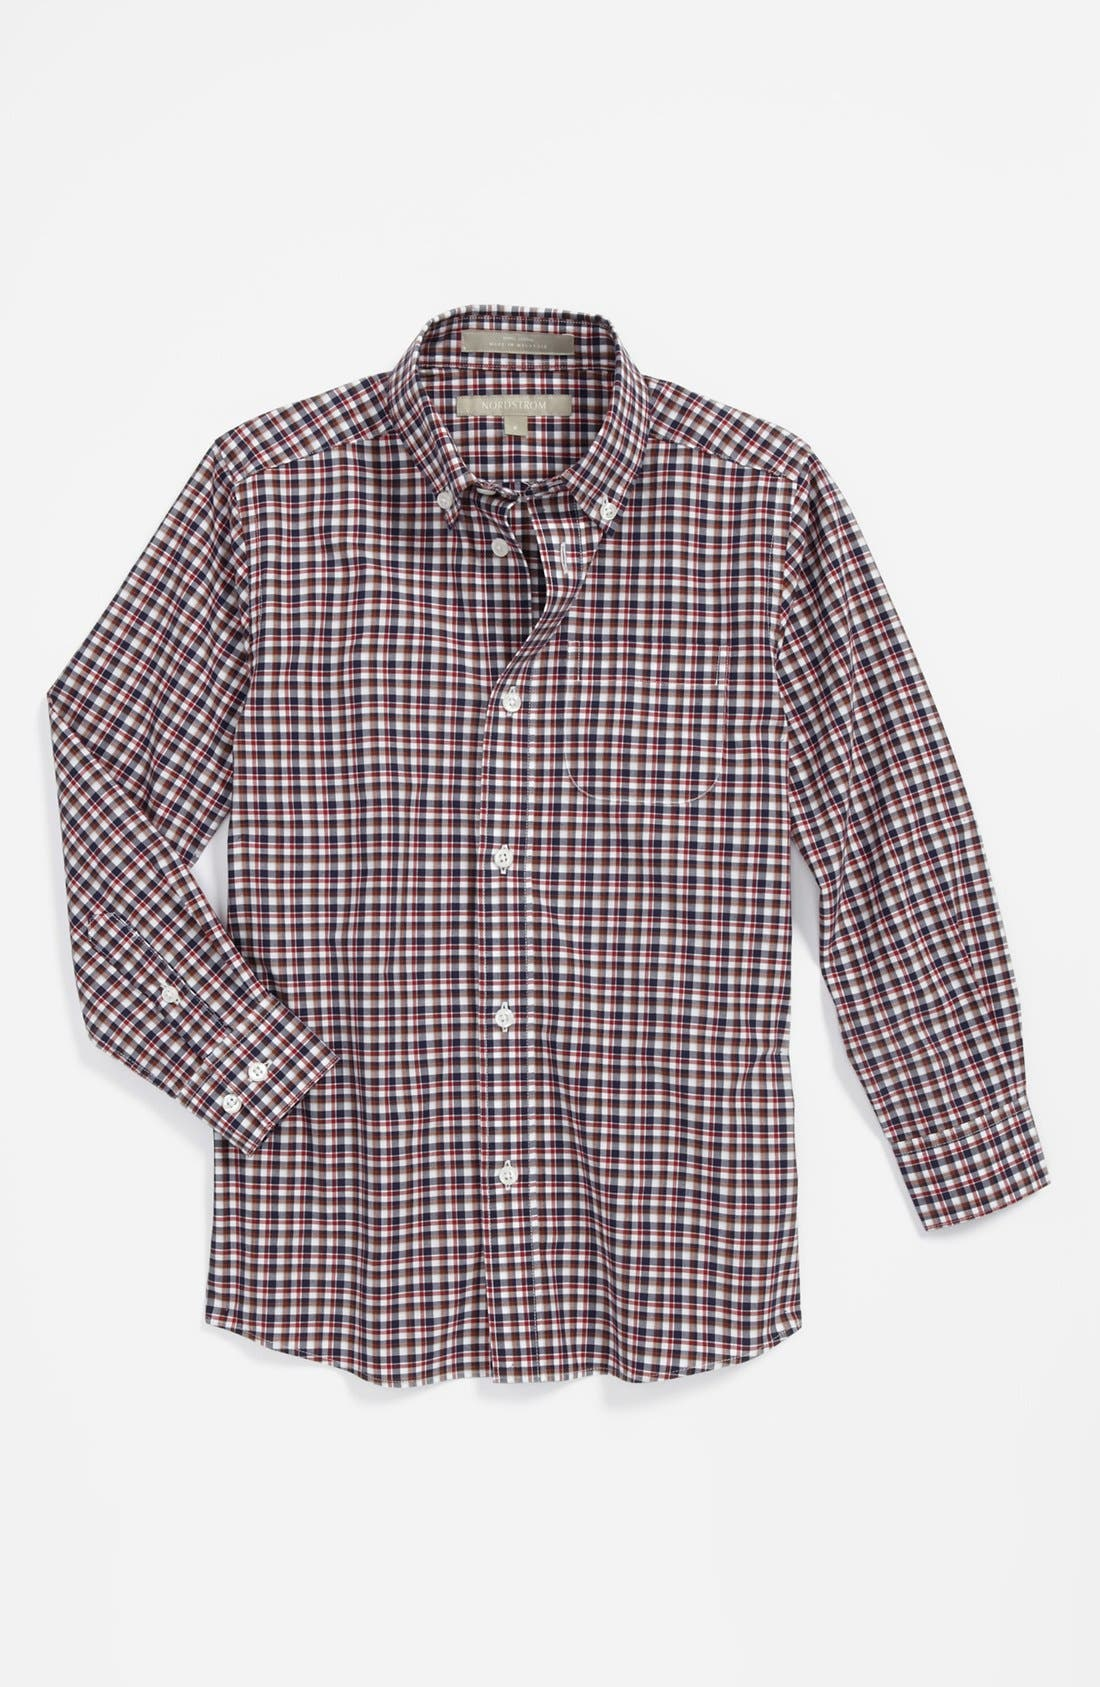 Alternate Image 1 Selected - Nordstrom Gingham Dress Shirt (Little Boys)